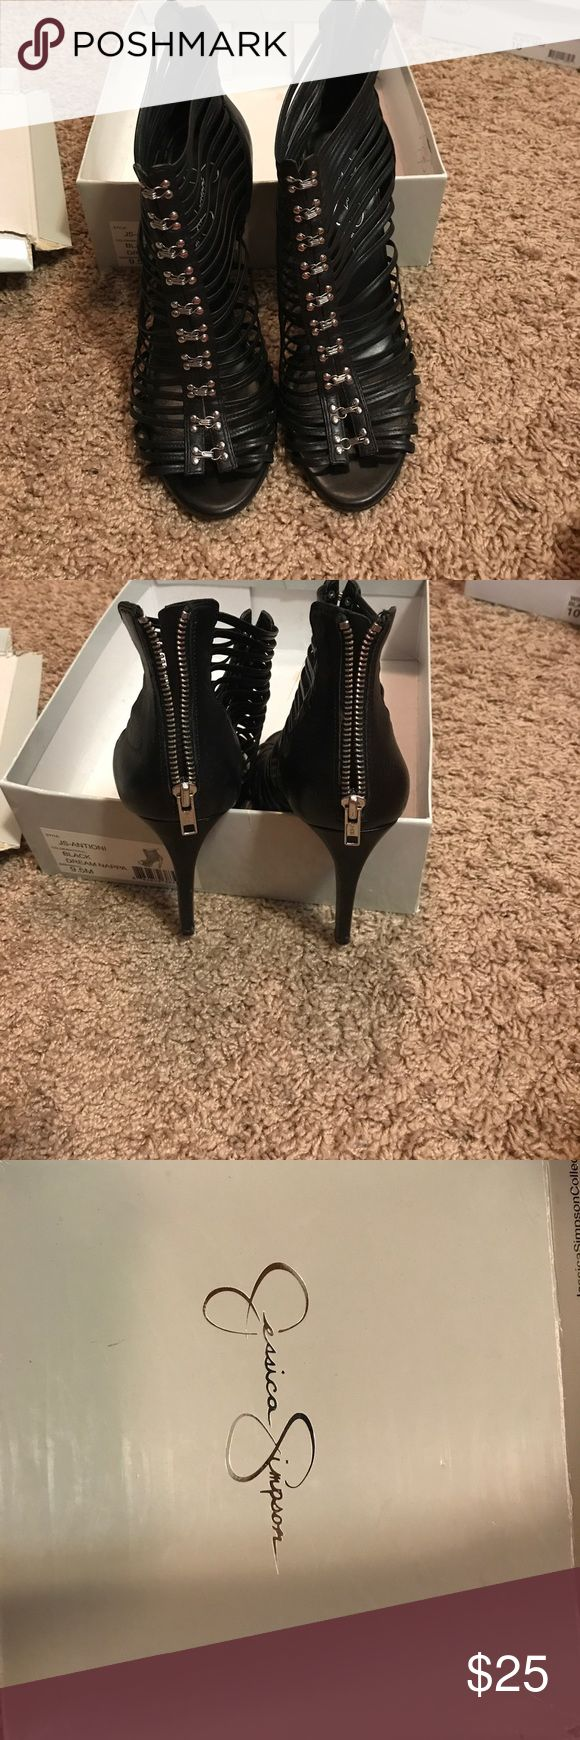 Jessica Simpson Black pump Black Dream Nappa Jessica Simpson Shoes